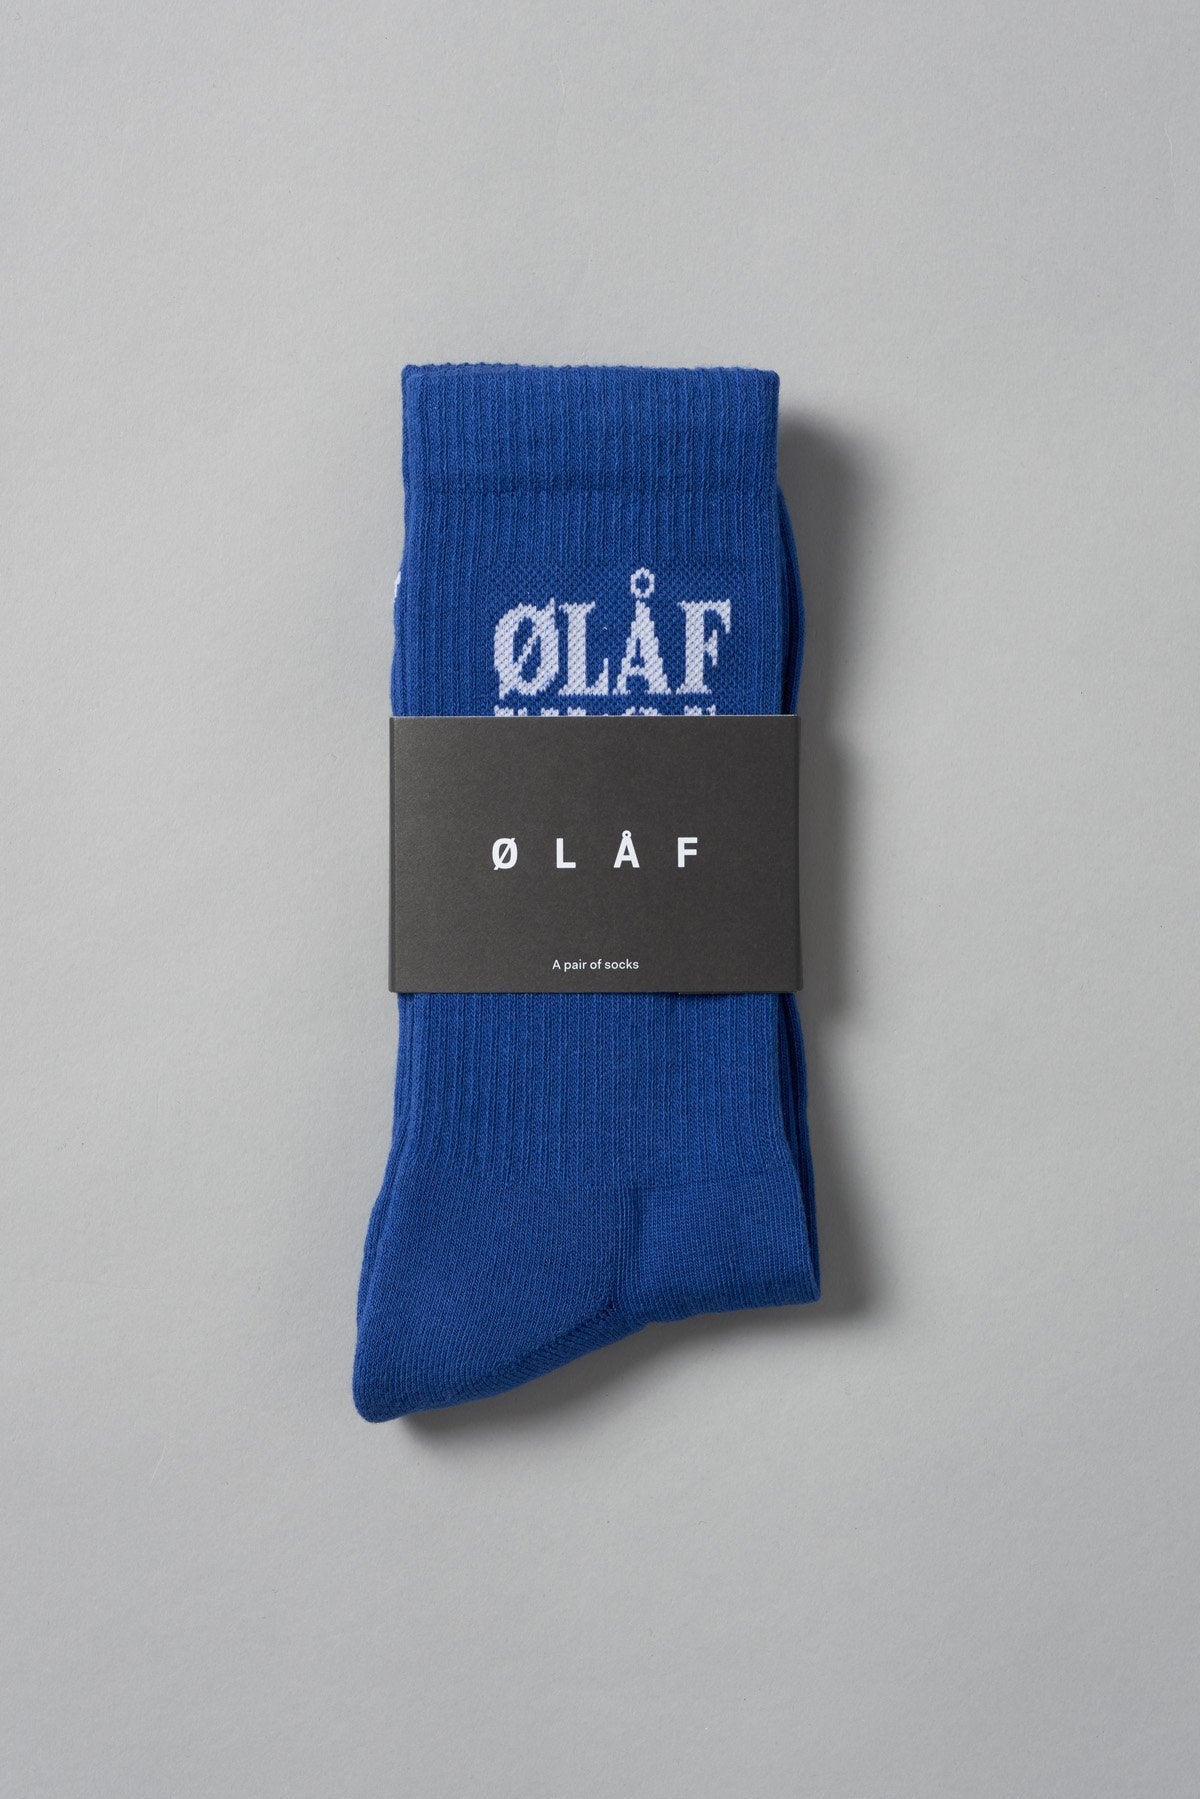 ØLÅF Triple Socks Blue, 75% Portuguese cotton, 23% polyamide, 2% elastane, Logo on ankle, One size fits all, Made in Portugal